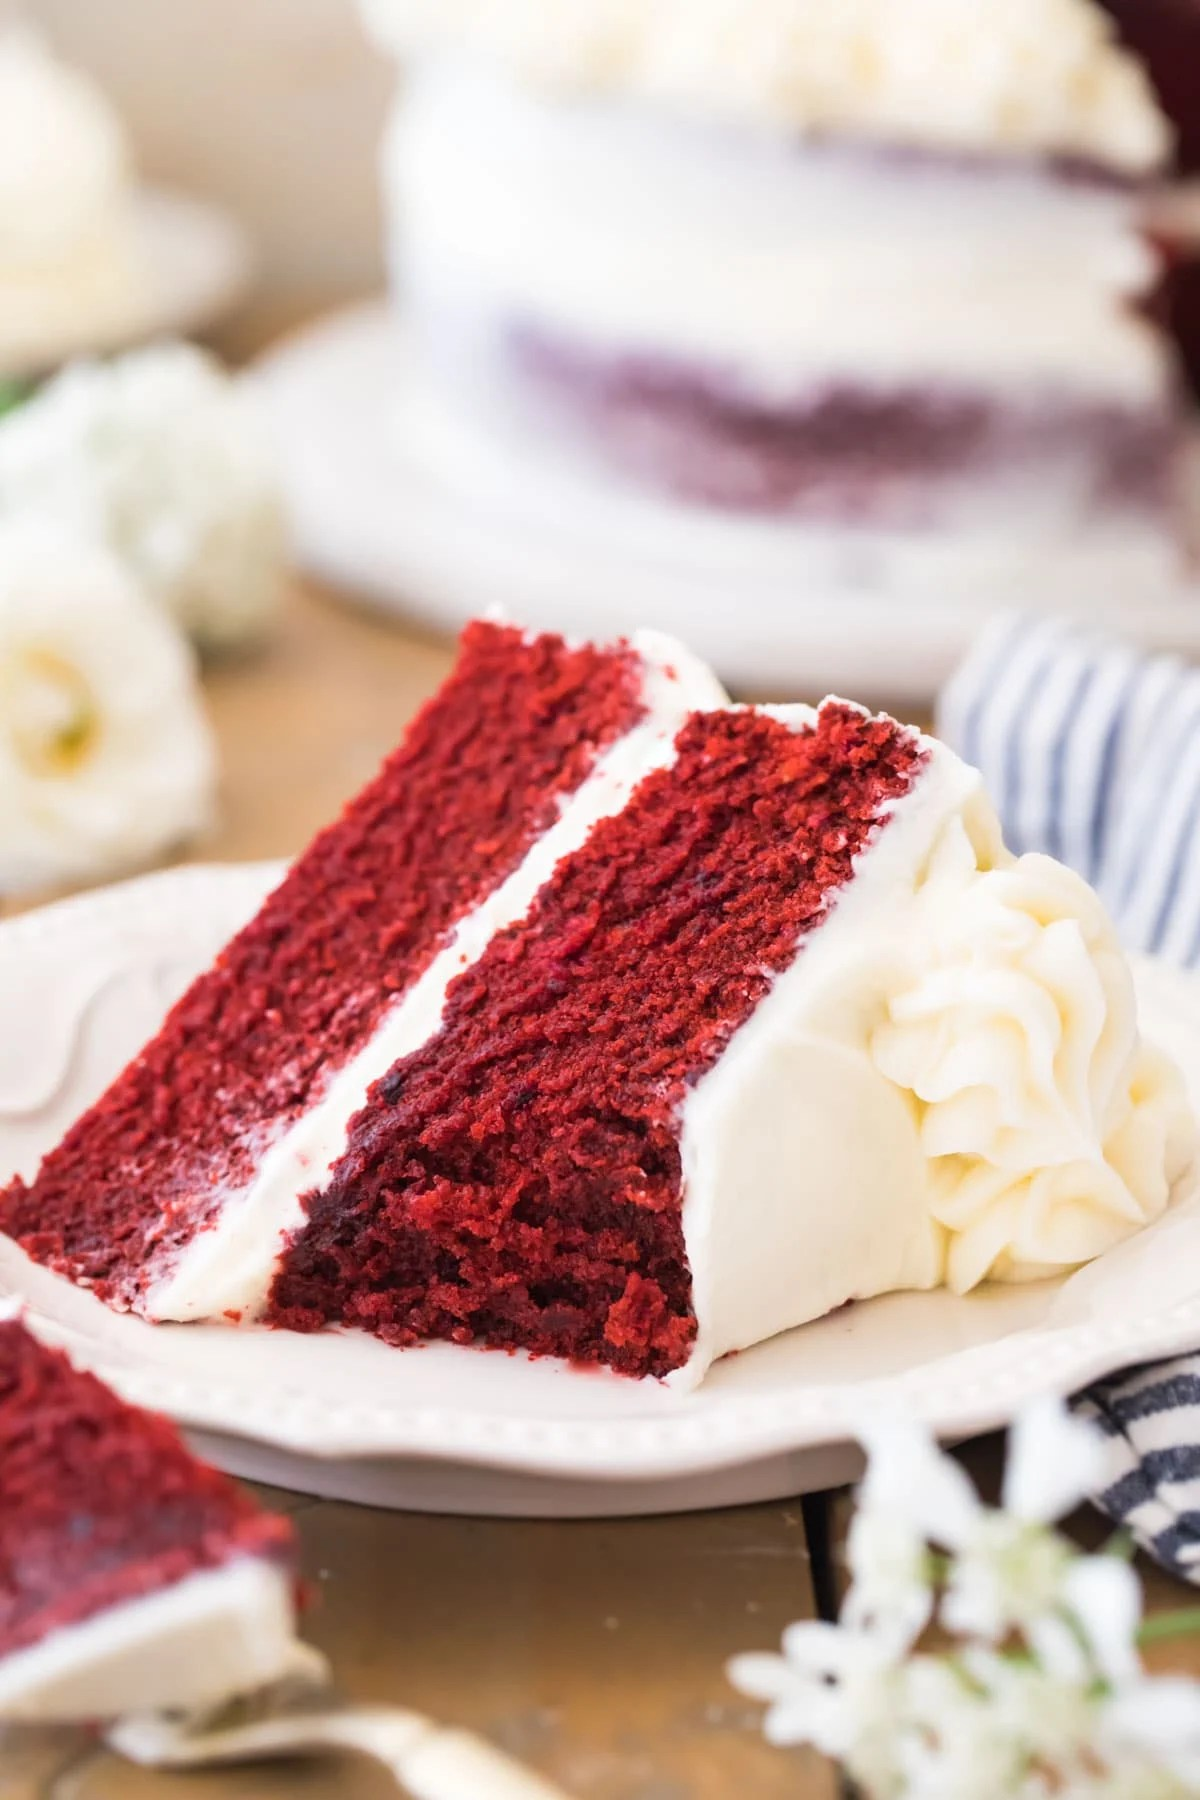 slice of red cake with bite missing